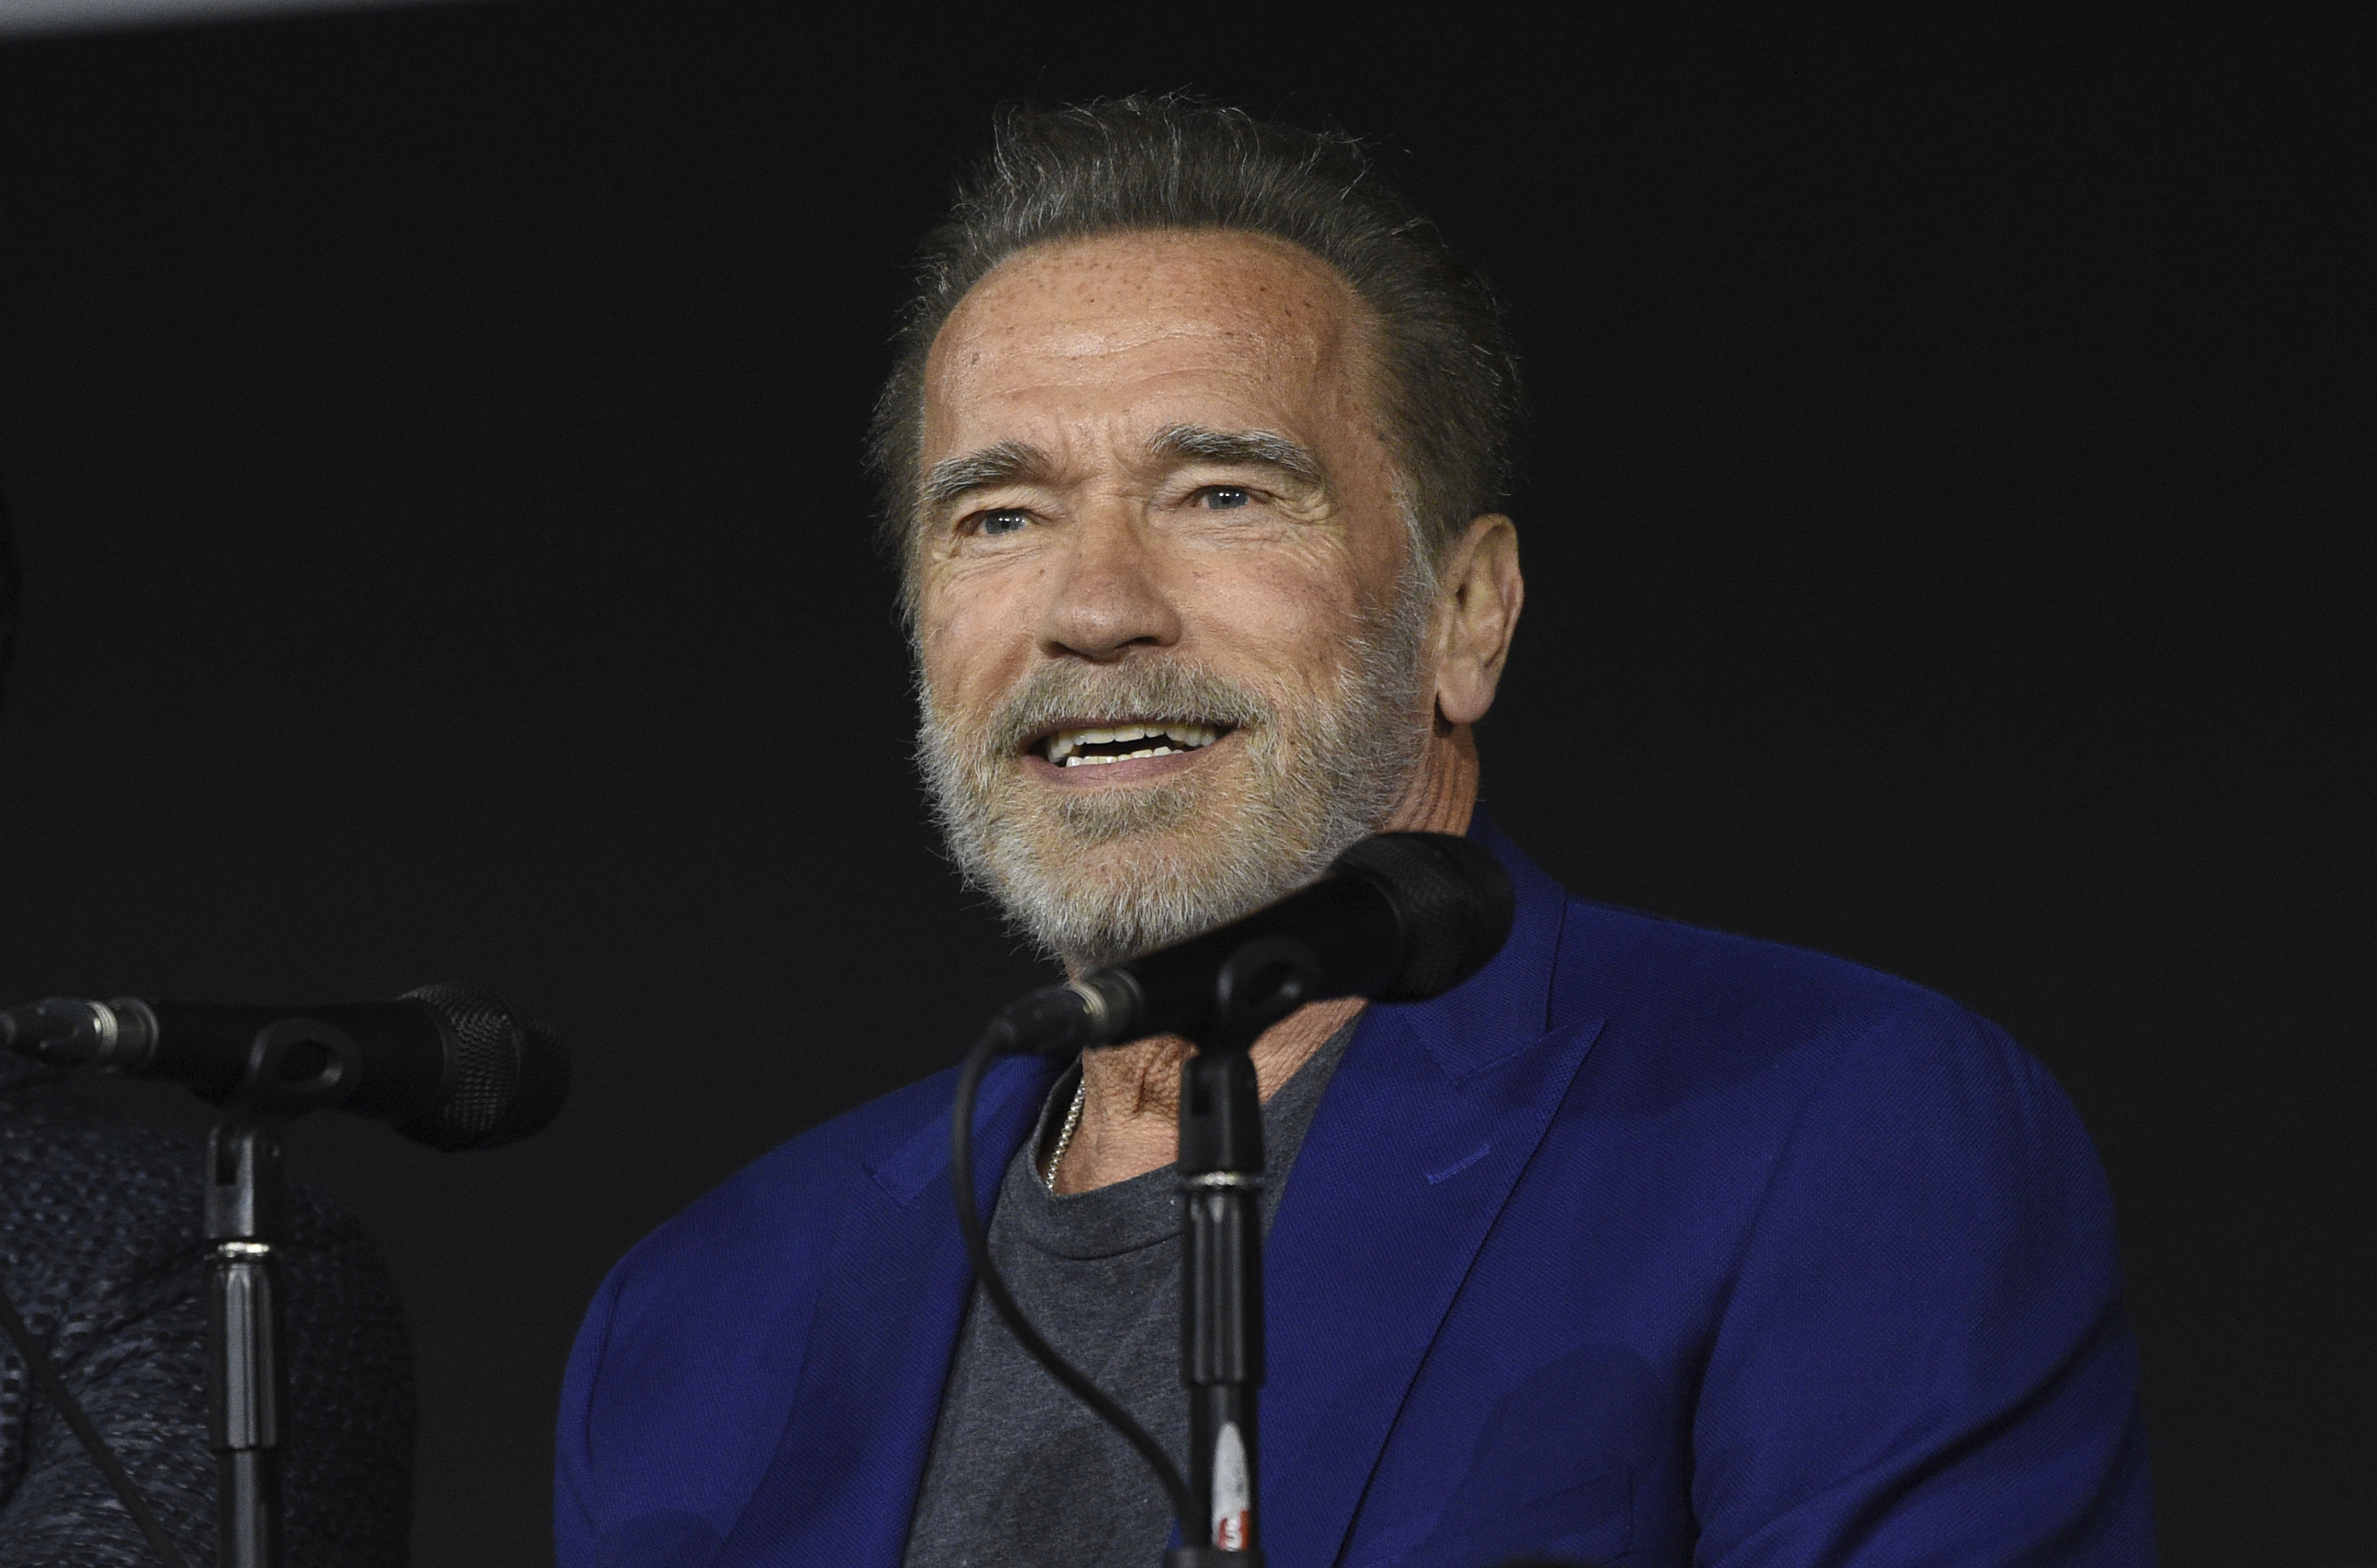 Westlake Legal Group AP19199695707471 Arnold Schwarzenegger says he 'could' vote for this Democrat in 2020 Sam Dorman fox-news/politics/elections fox-news/politics/2020-presidential-election fox-news/person/elizabeth-warren fox-news/person/donald-trump fox-news/person/arnold-schwarzenegger fox news fnc/media fnc fb5180a5-29c6-5254-af1e-ff736c06c100 article